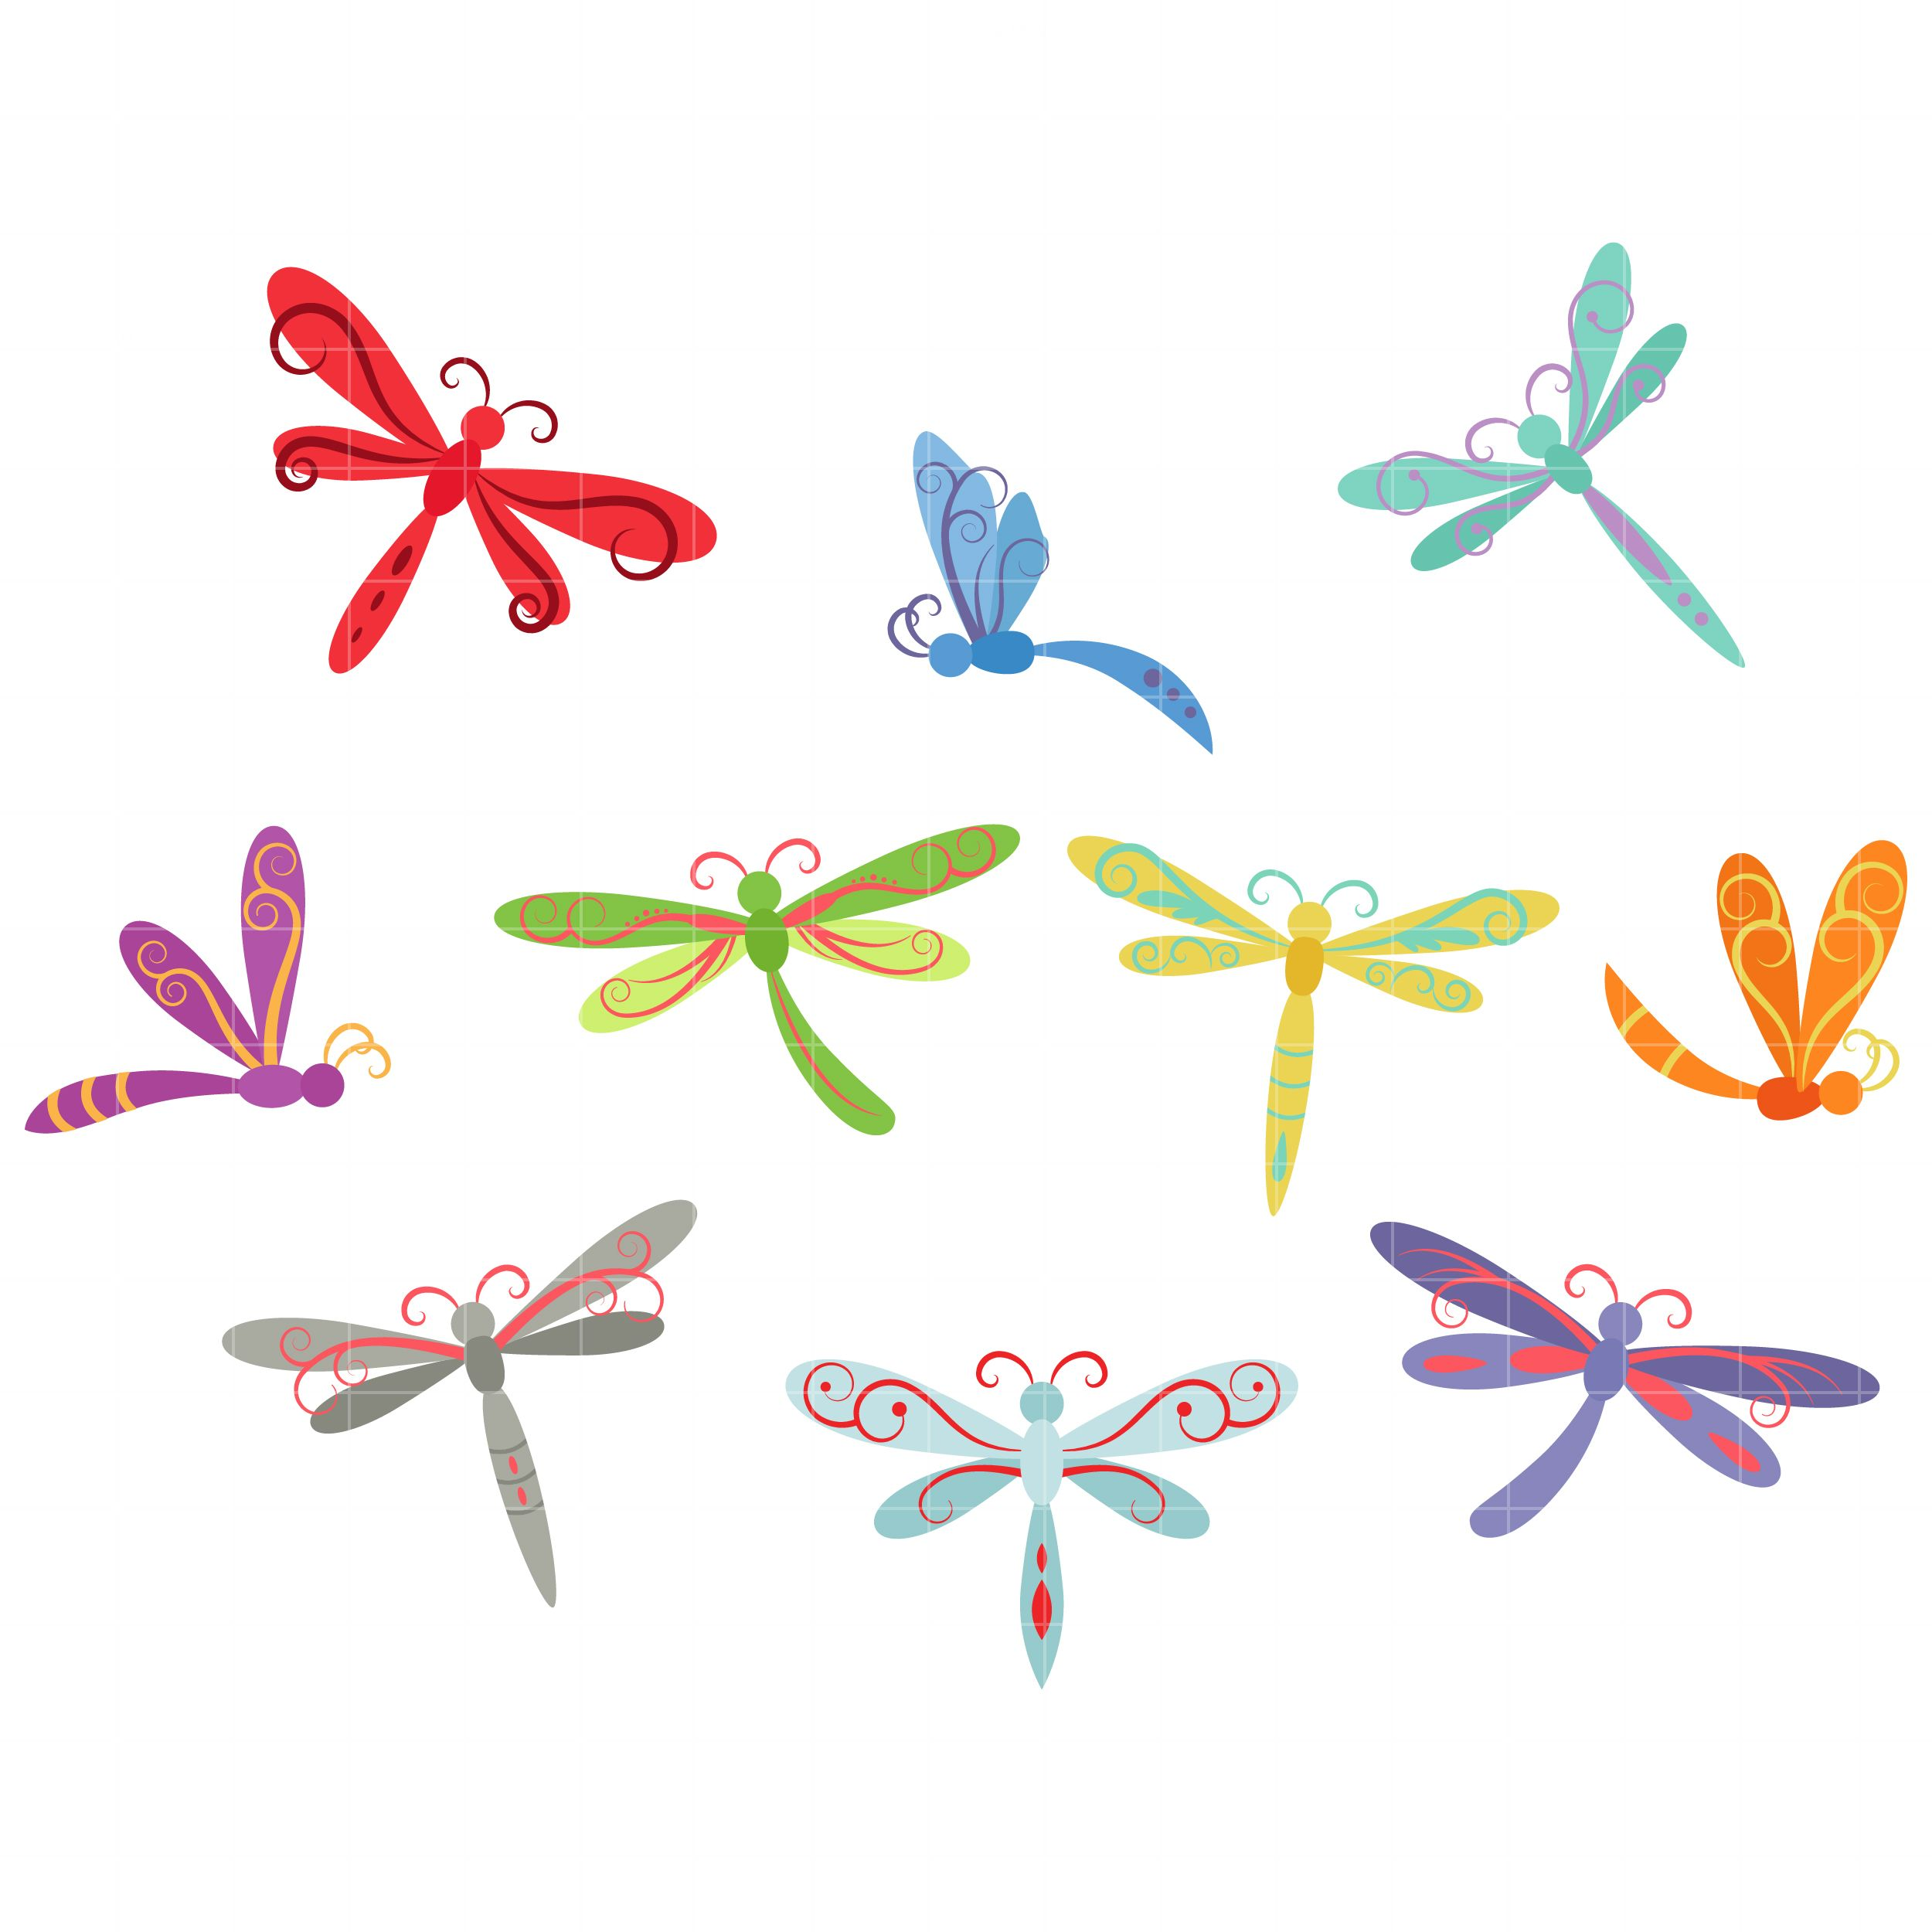 Dragonfly clipart whimsical. Dragonflies set semi exclusive